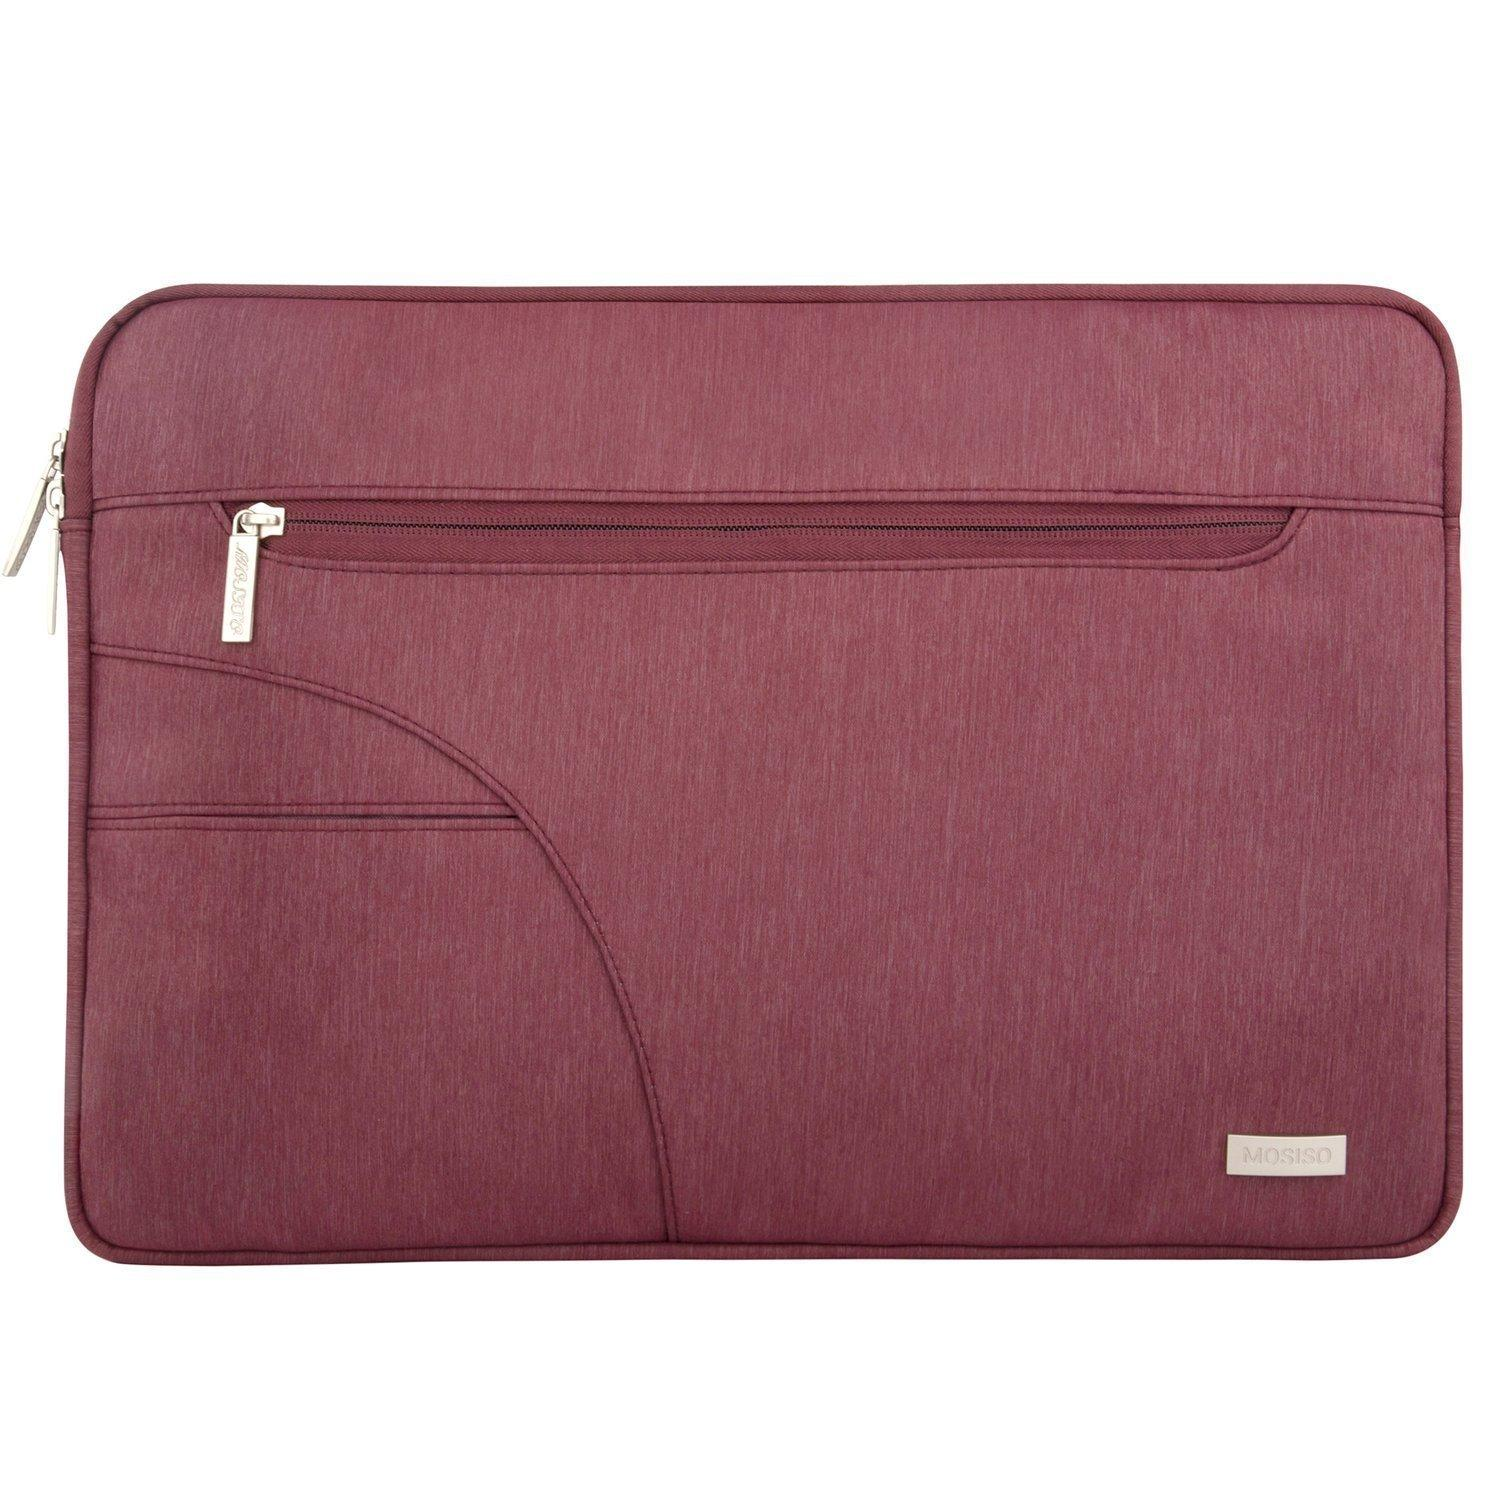 Tas Laptop Mosiso Red Wine Softcase Sleeve Case 14 - 14.6 inch